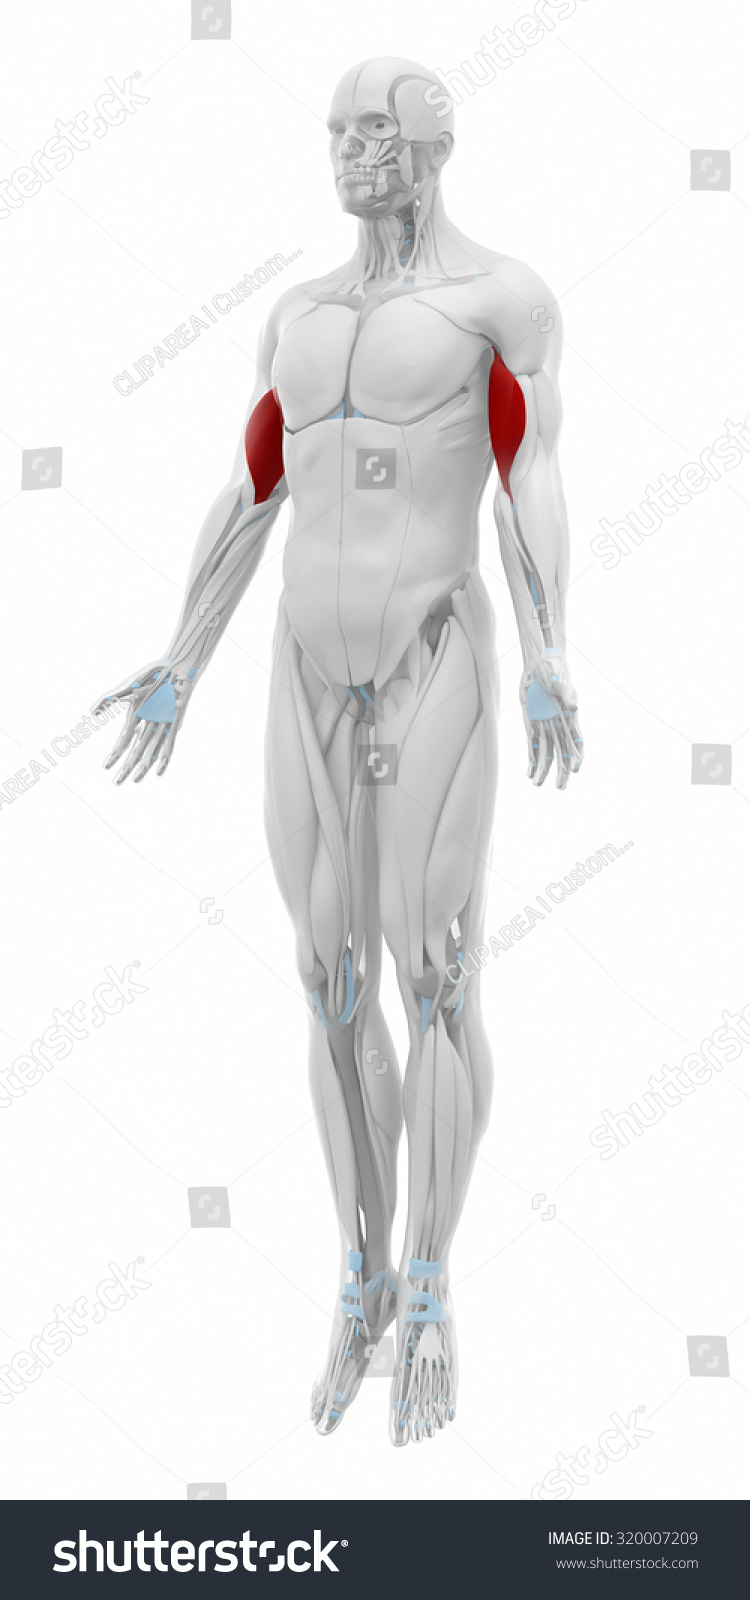 Biceps Brachii Muscles Anatomy Map Stock Illustration 320007209 ...